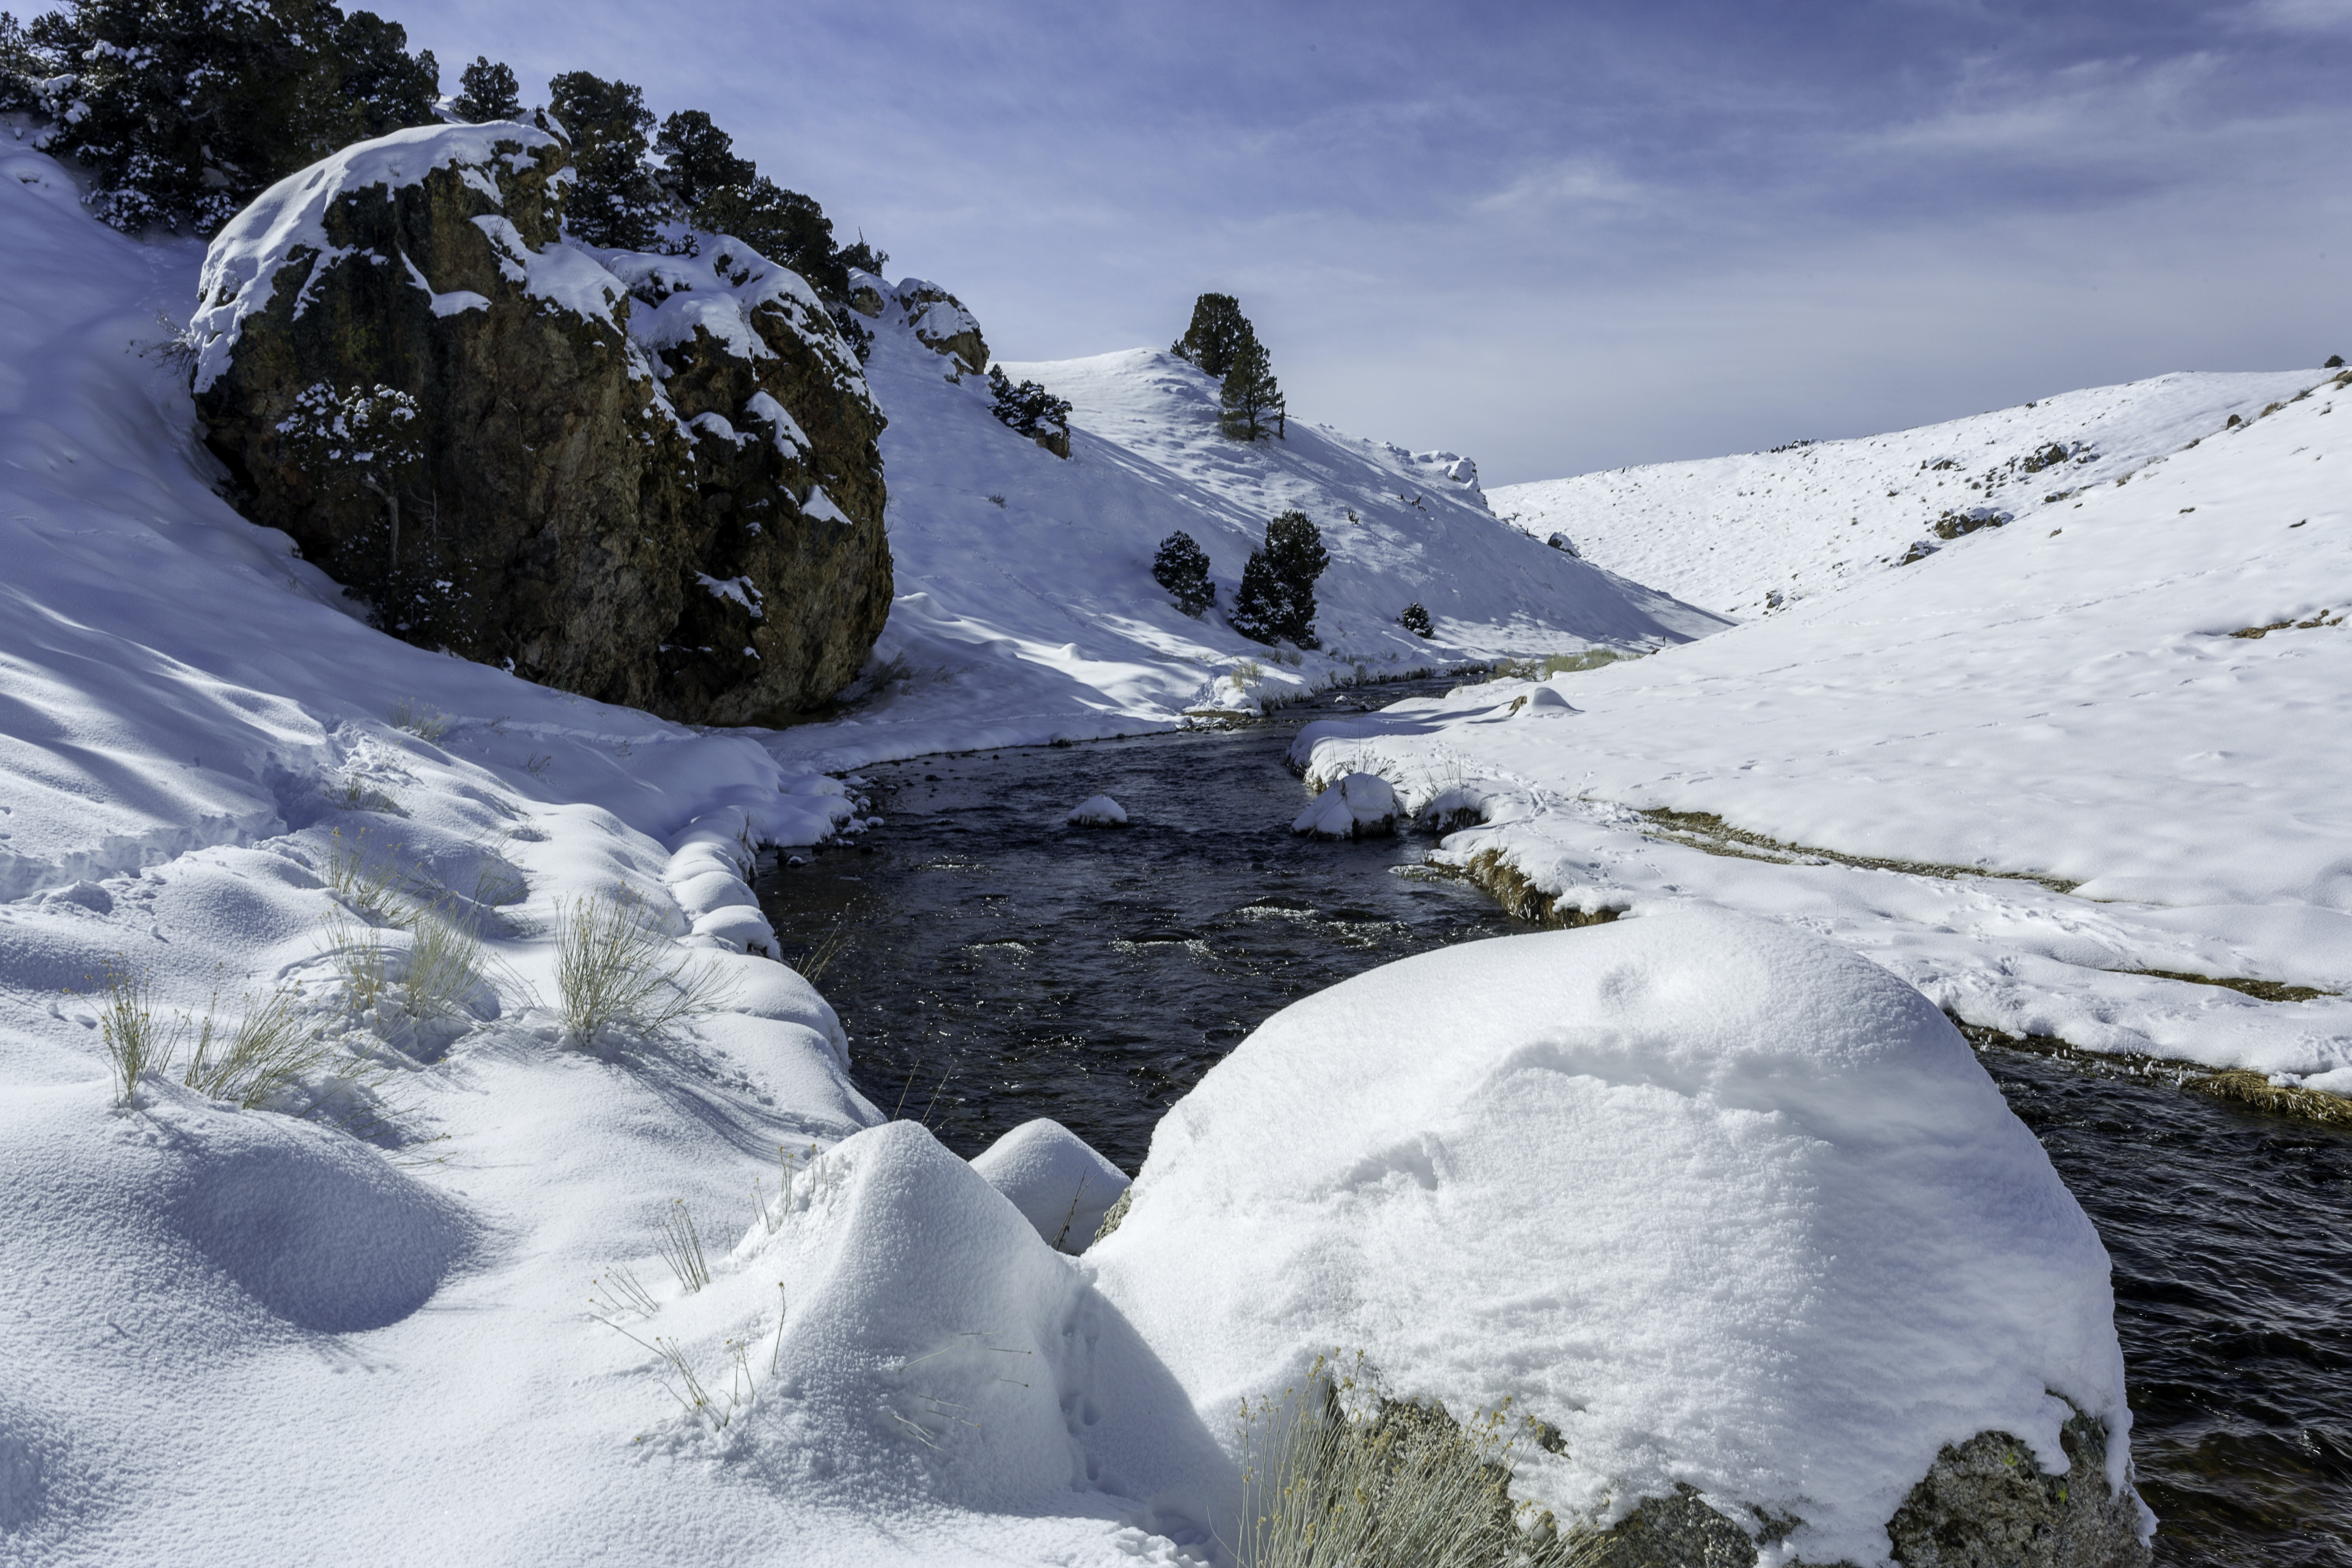 An icy stream rushes past a snowy winter landscape